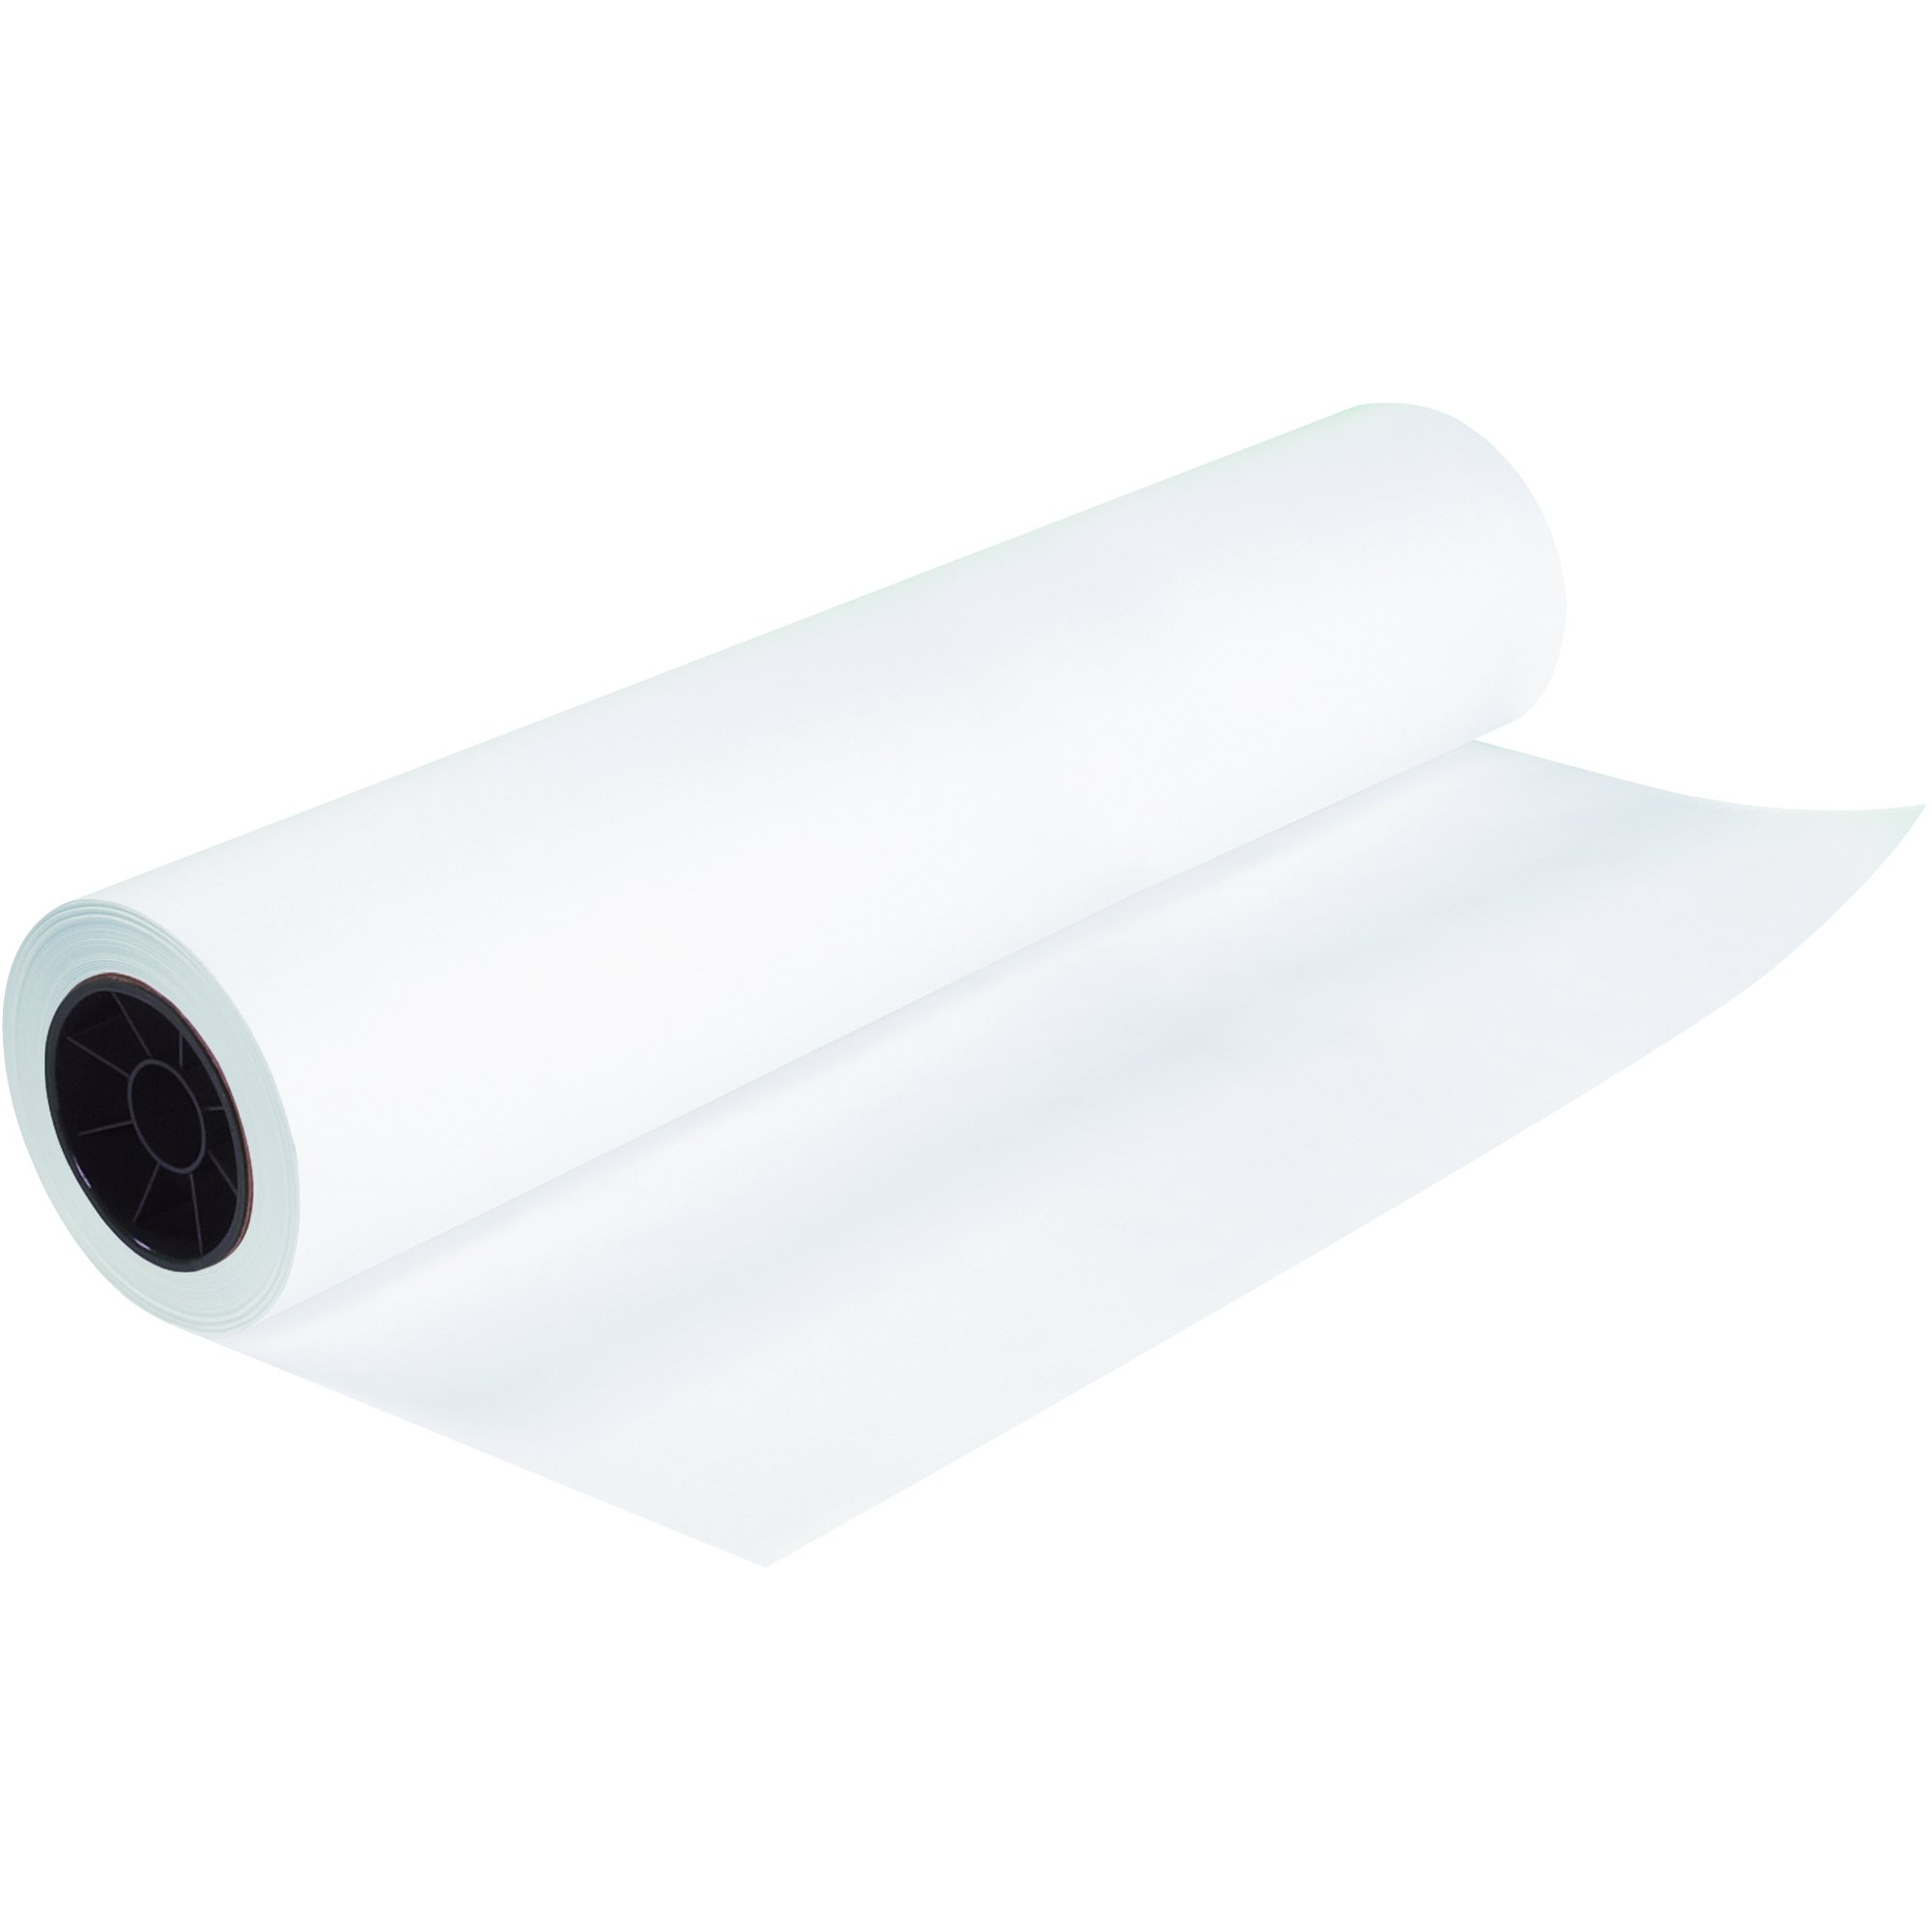 BOX USA BTYR24150WH Tyvek Roll, 24'' x 150', White (Pack of 1) by BOX USA